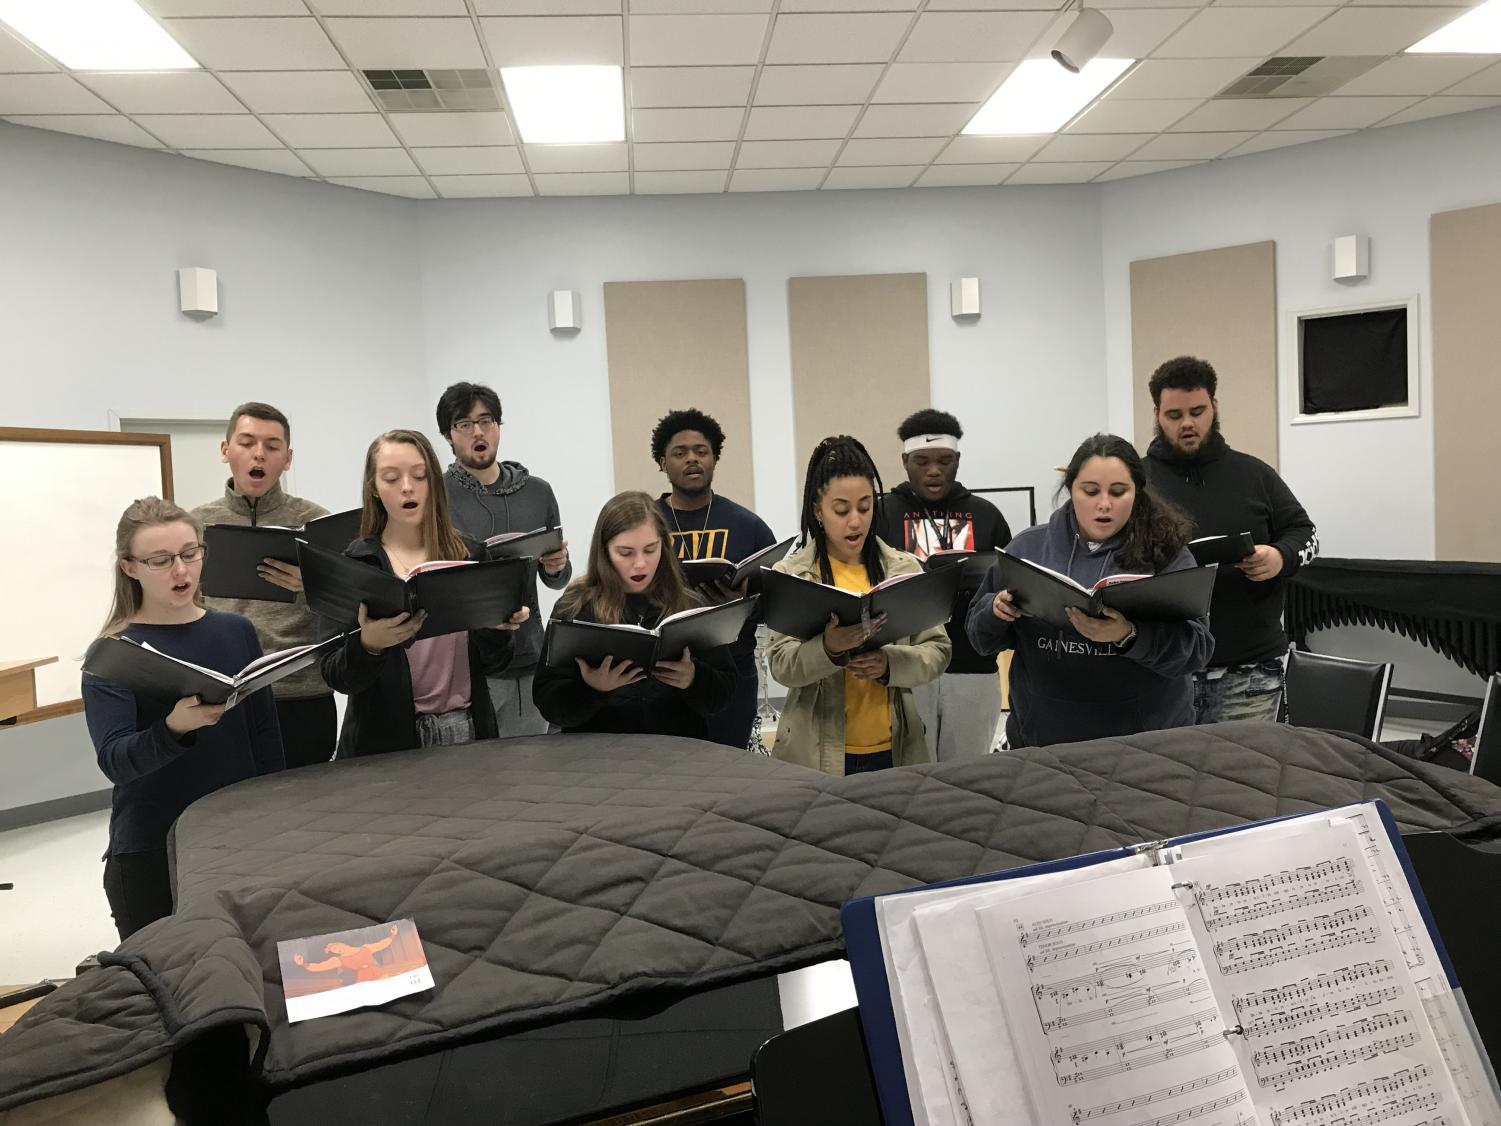 The Averett Singers practicing for upcoming concerts.